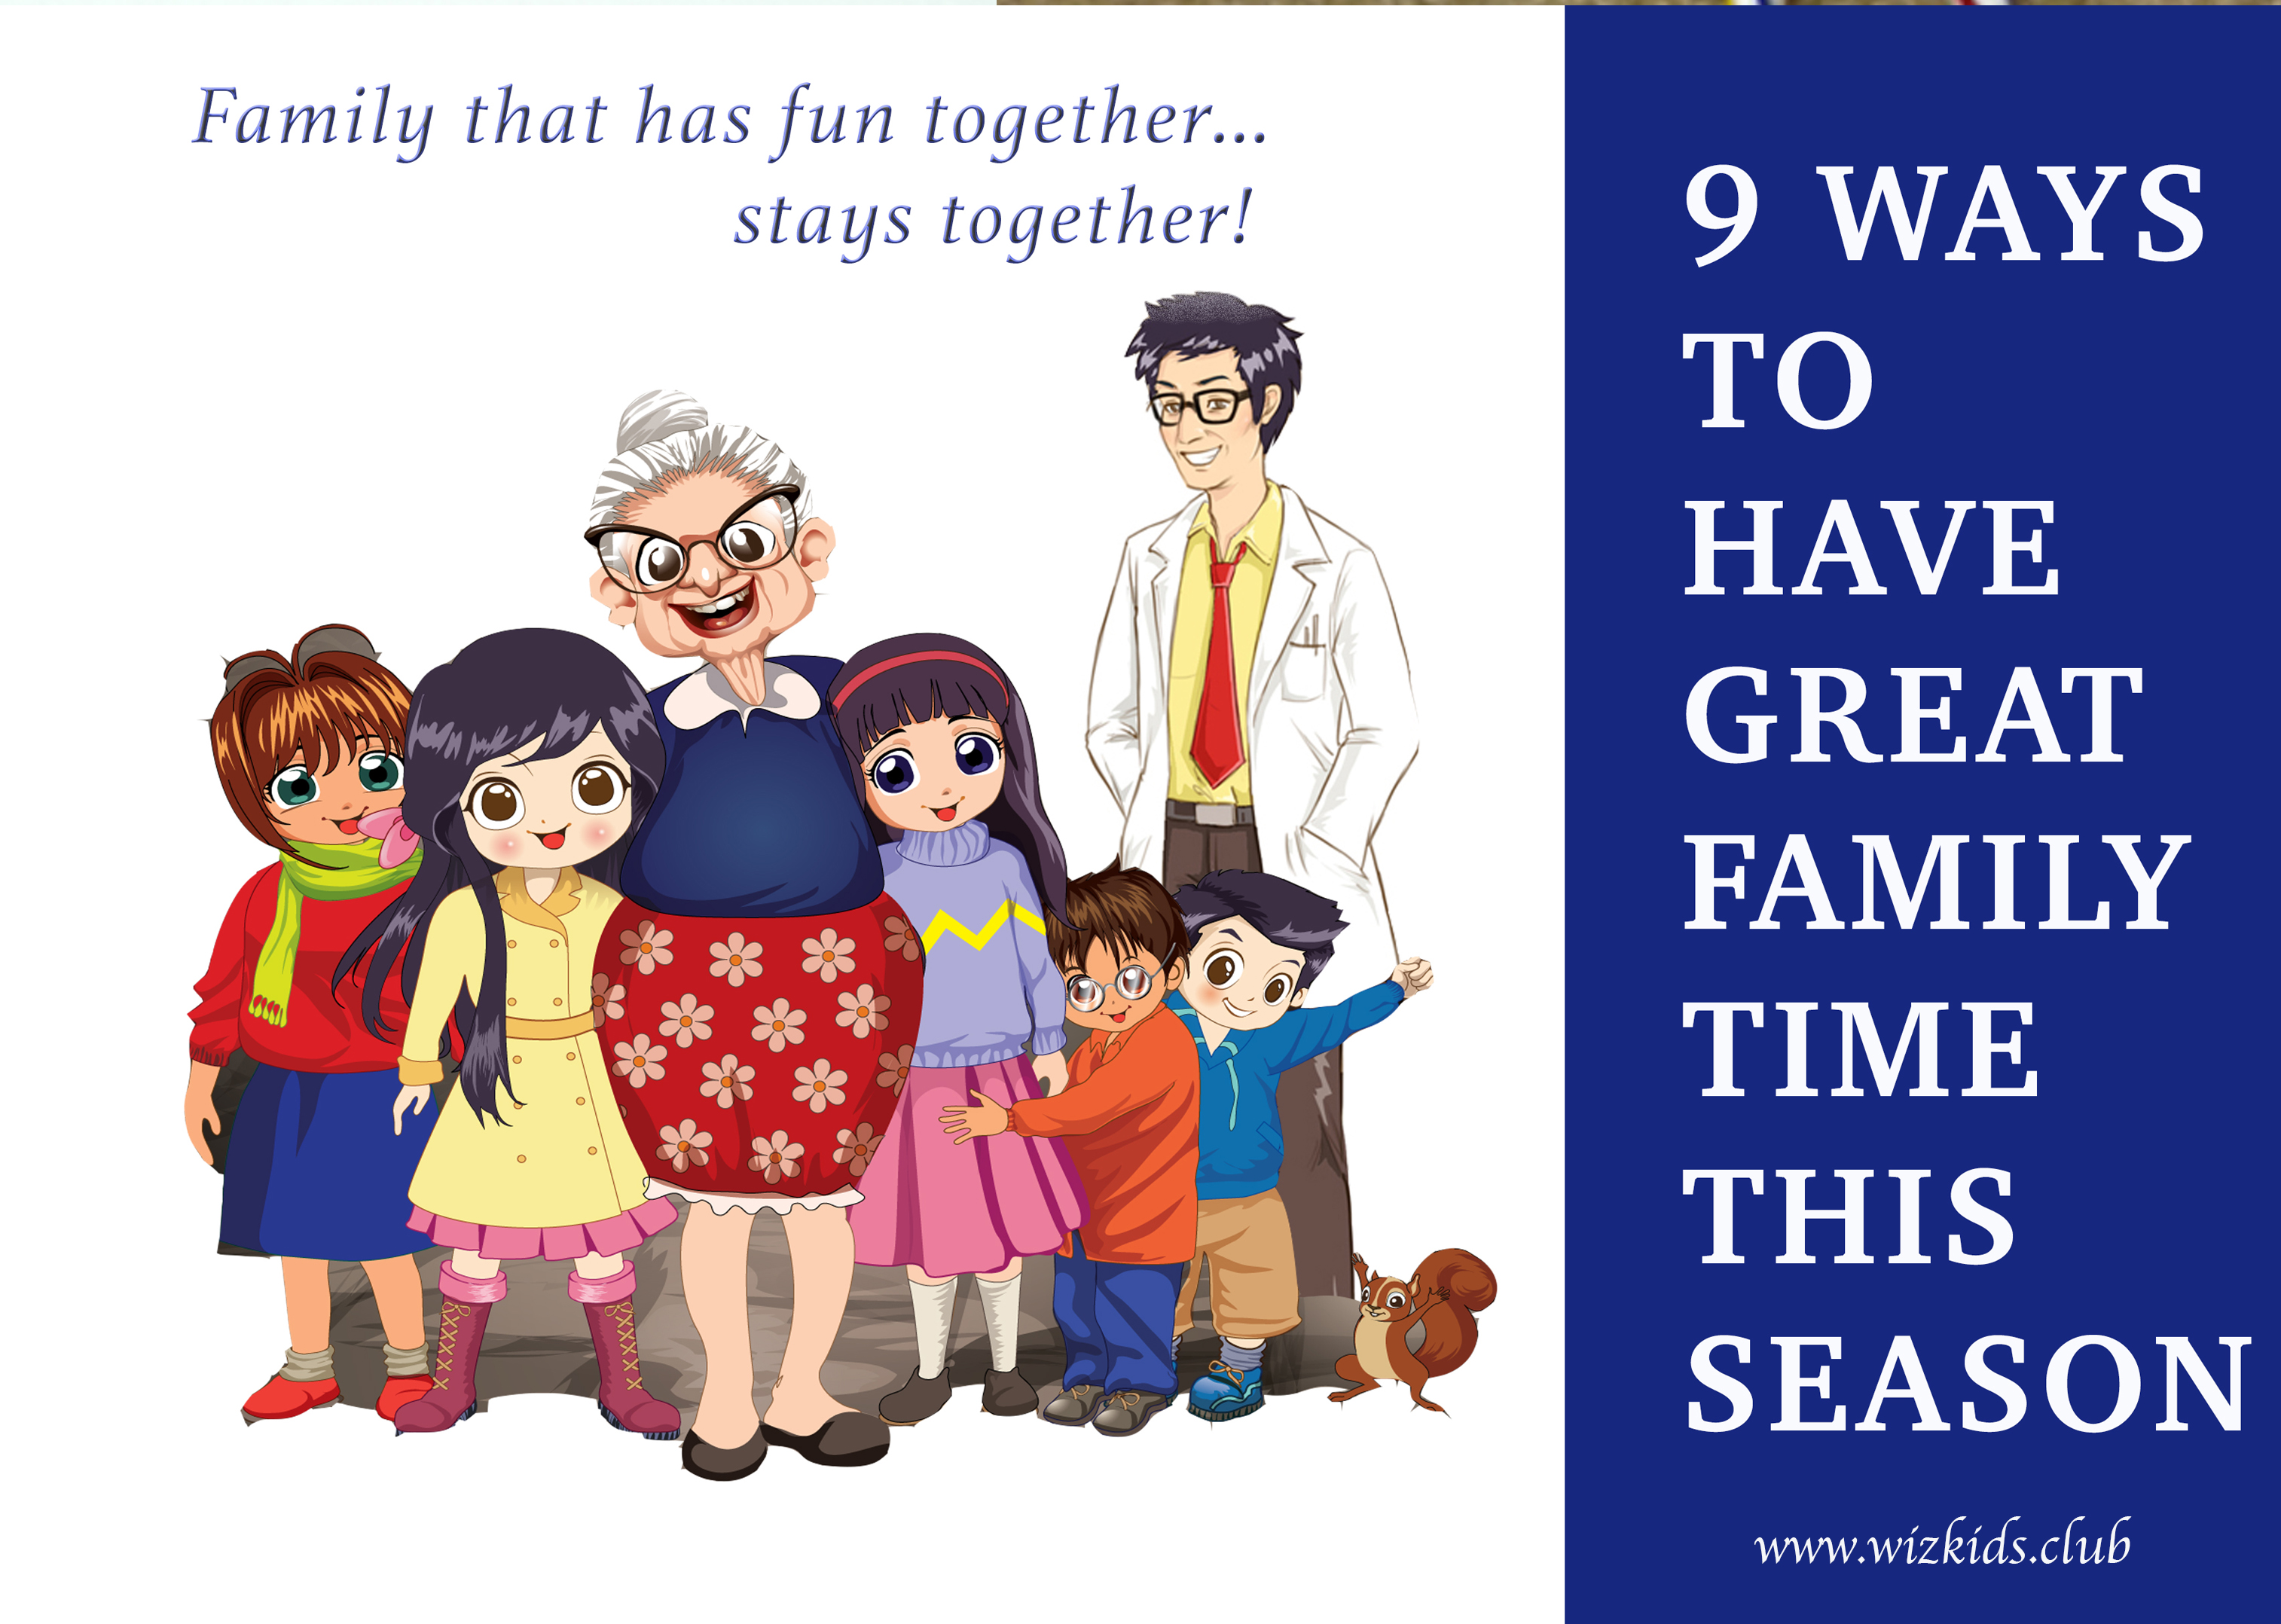 9 WAYS TO HAVE GREAT FUN FAMILY TIME!